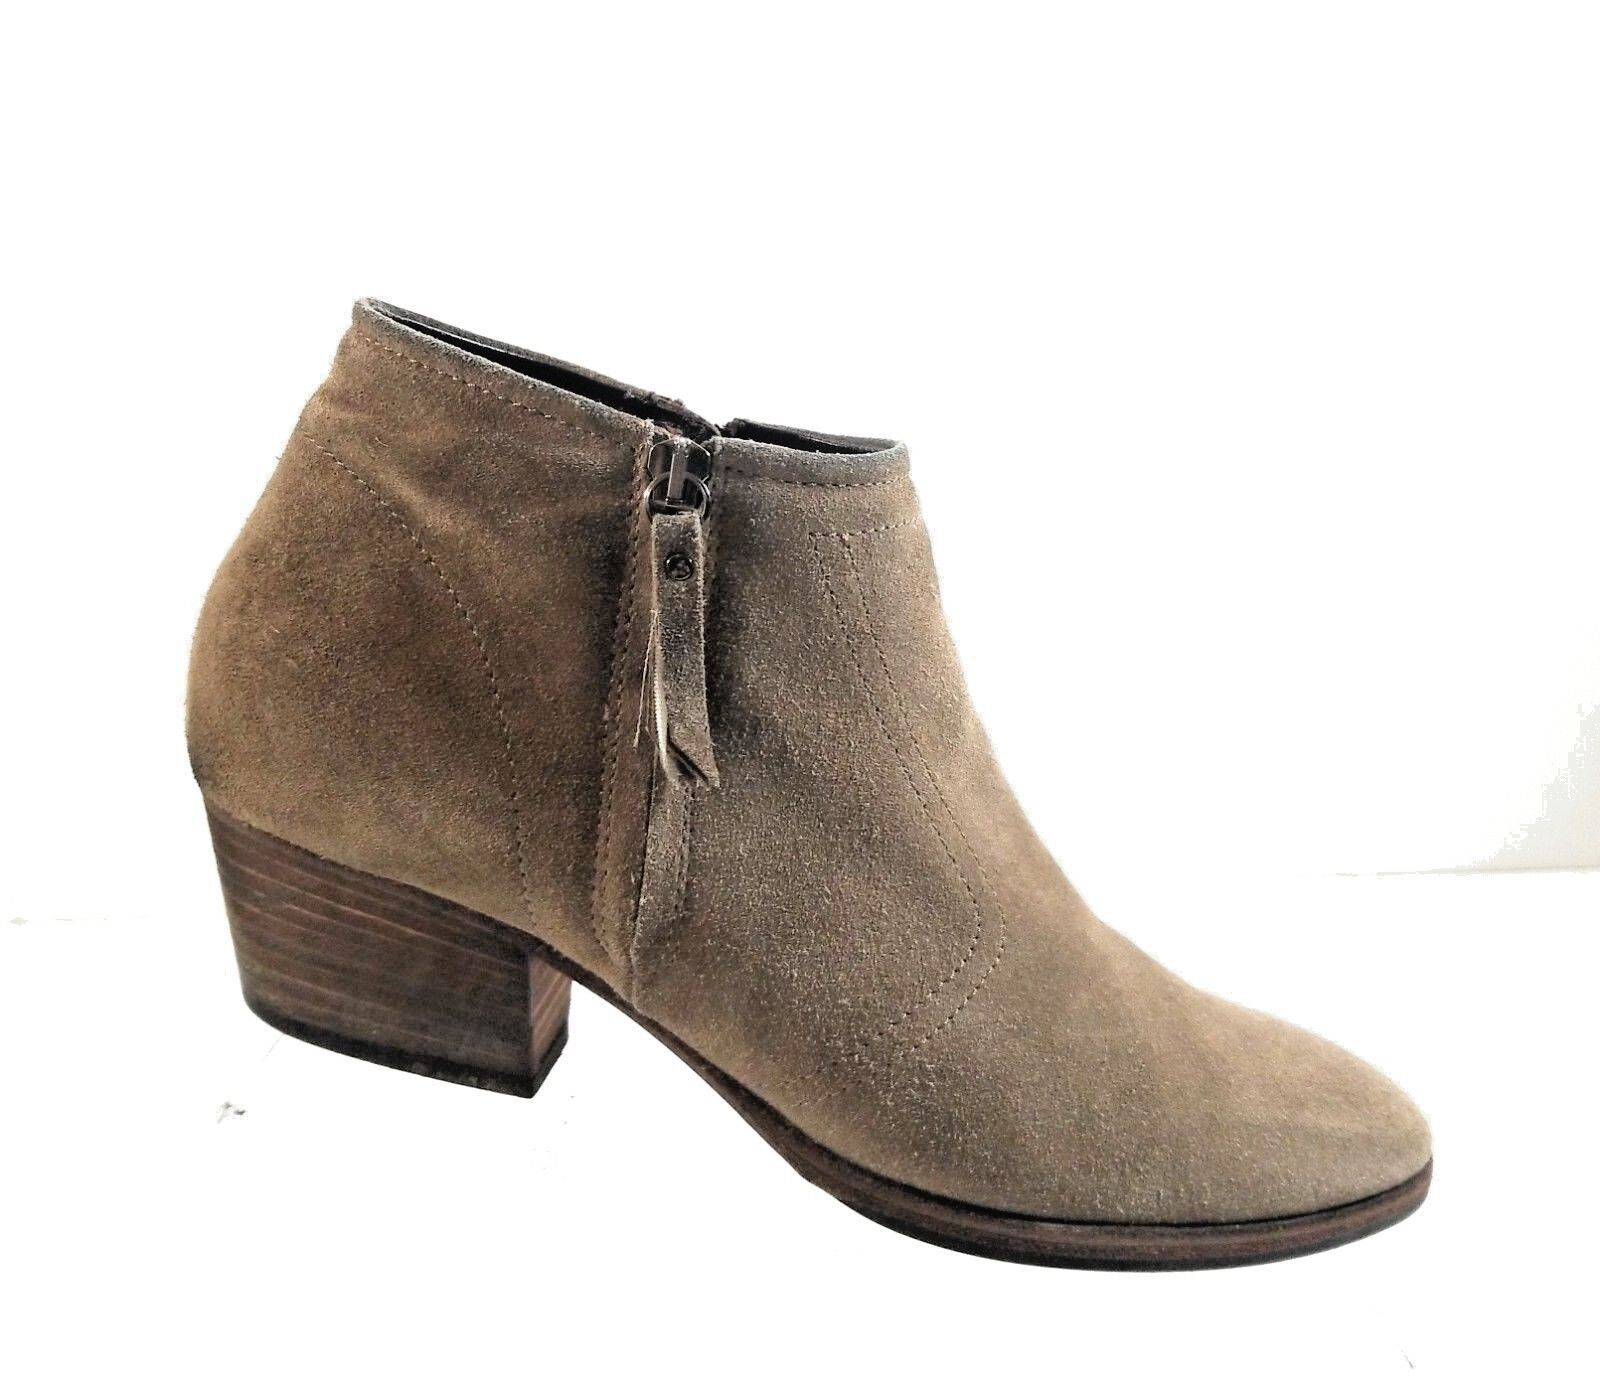 Aquatalia by Harvin K Women Booties Brown Leather Suede Zip Up Ankle Boots Sz 10